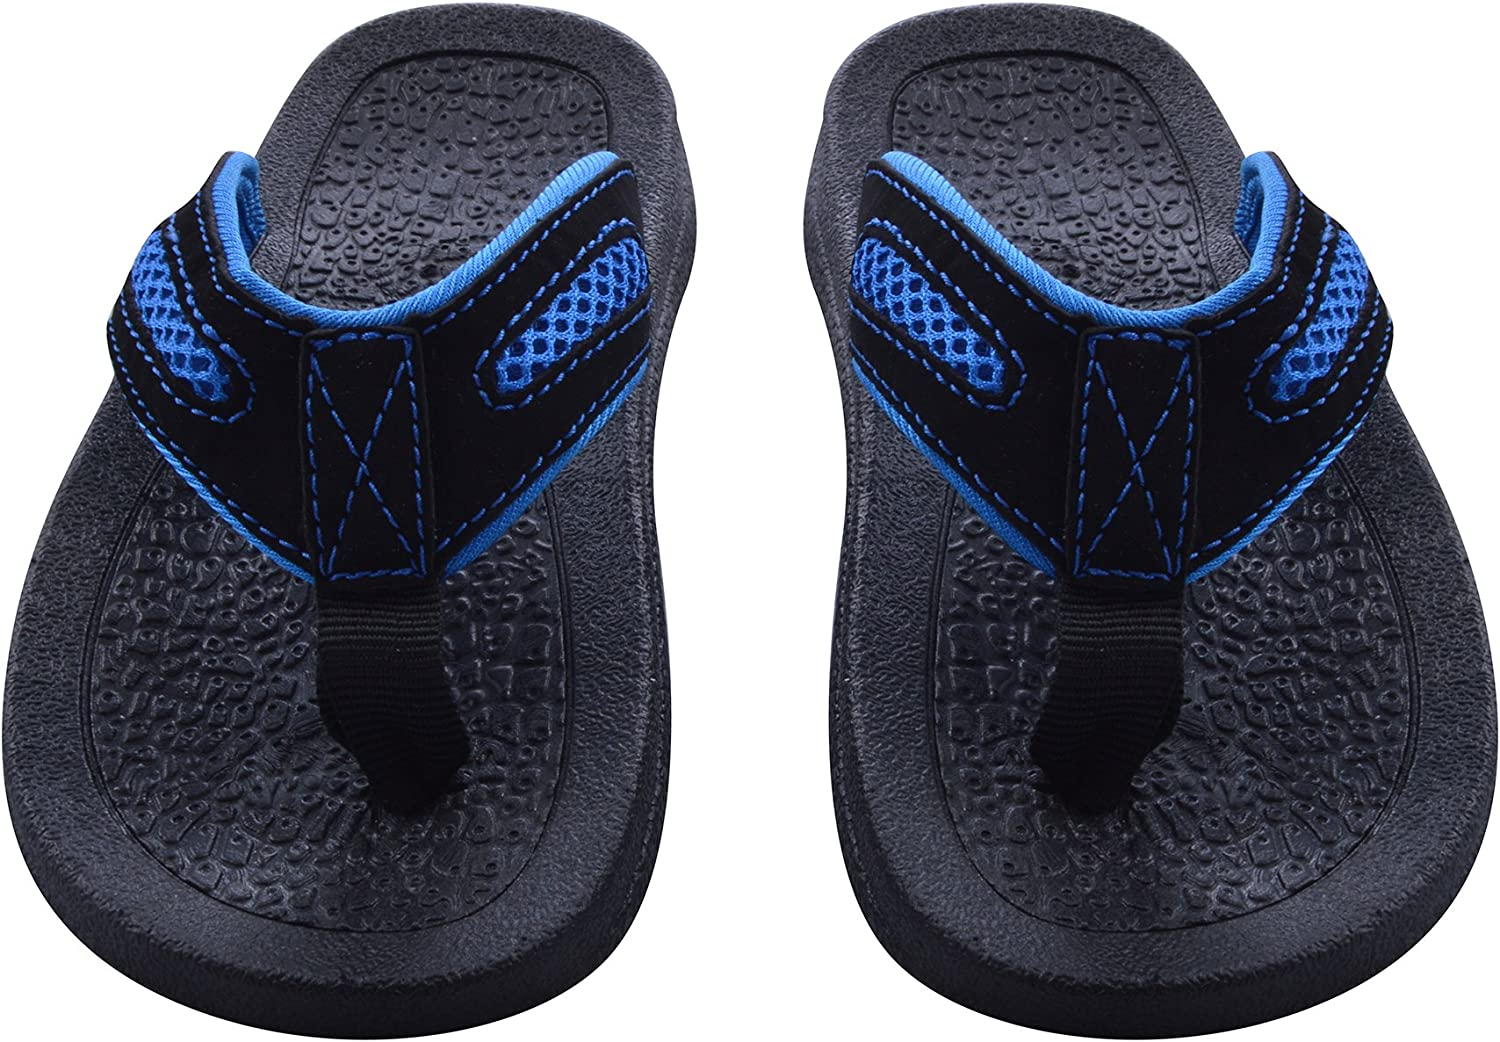 Skysole Boys Rugged Sandals with Thong Straps